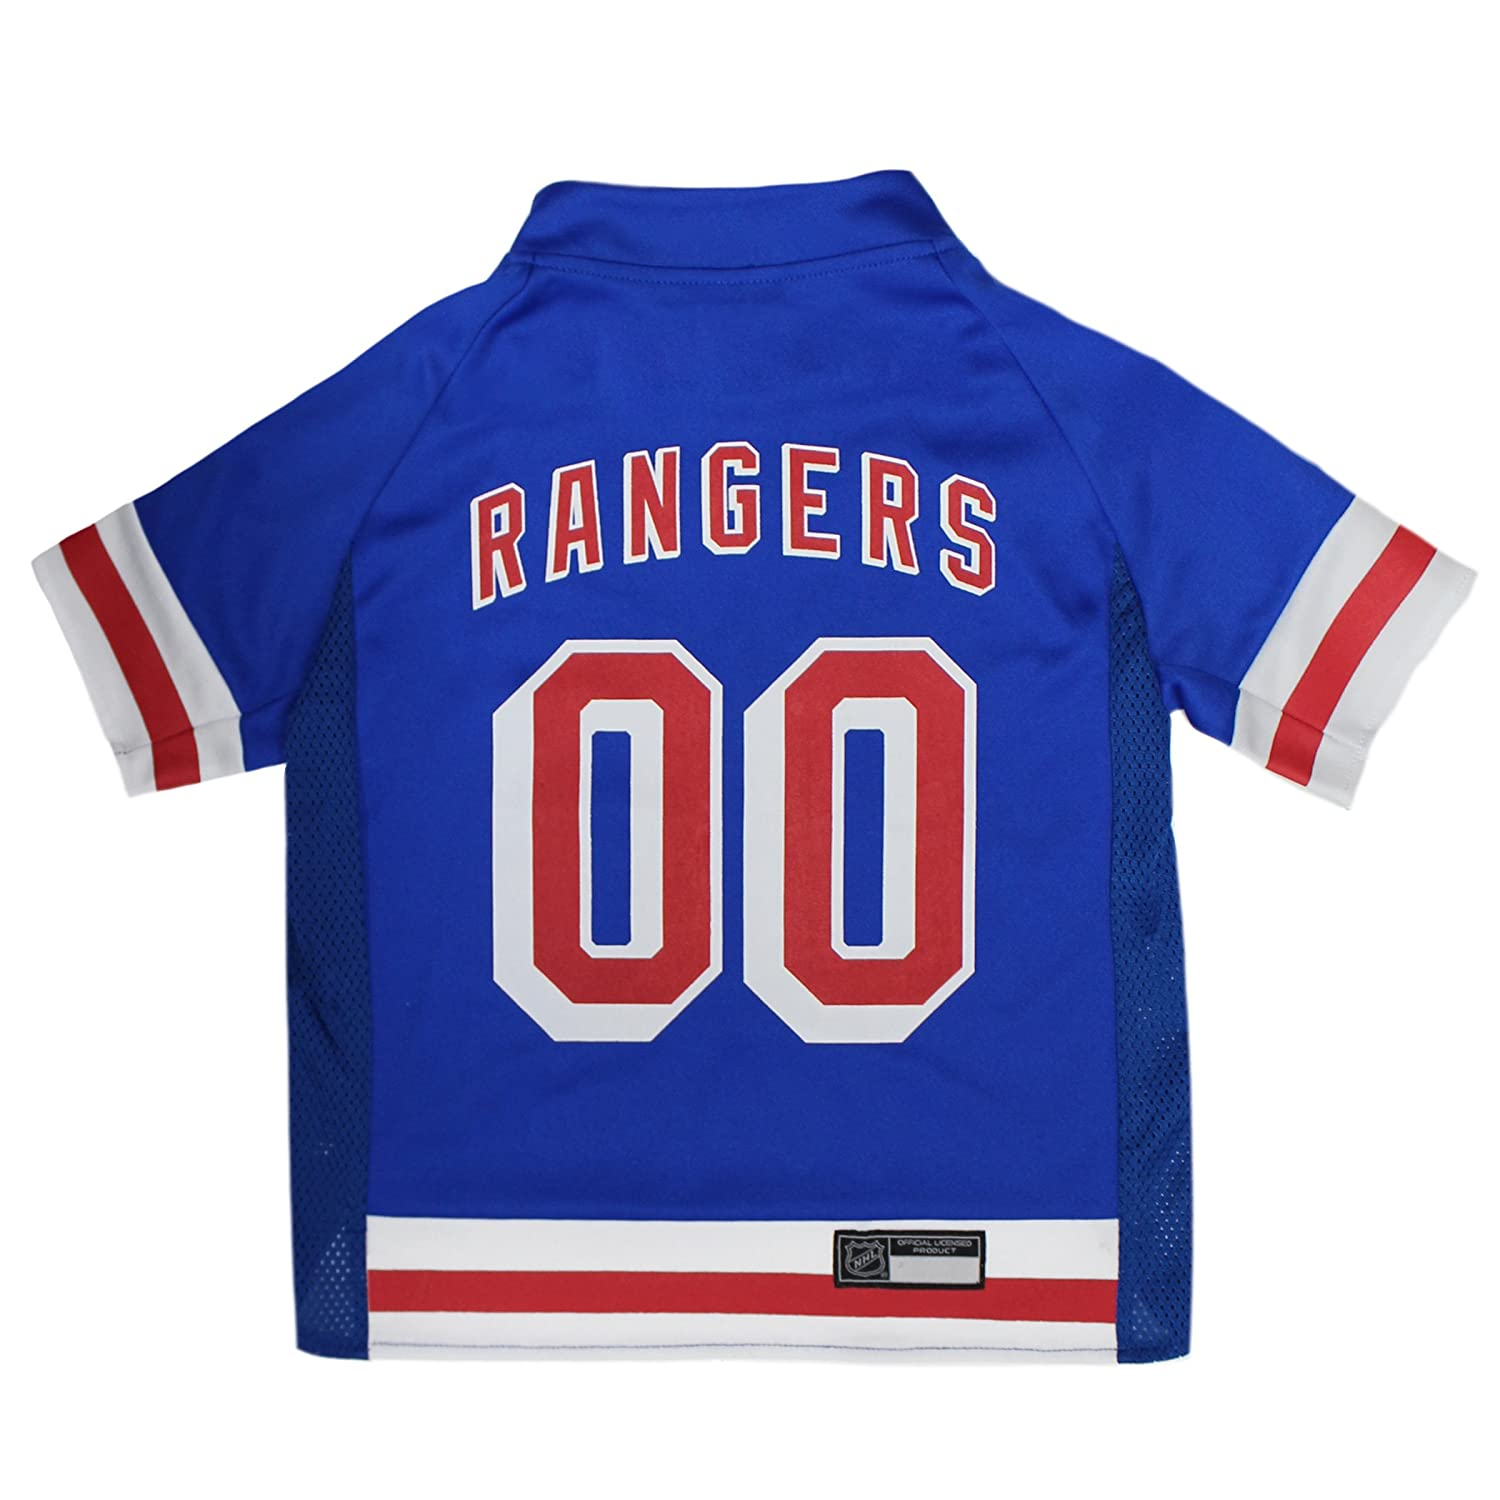 online store cd440 0a696 Amazon.com : NHL New York Rangers Jersey for Dogs & Cats, X ...